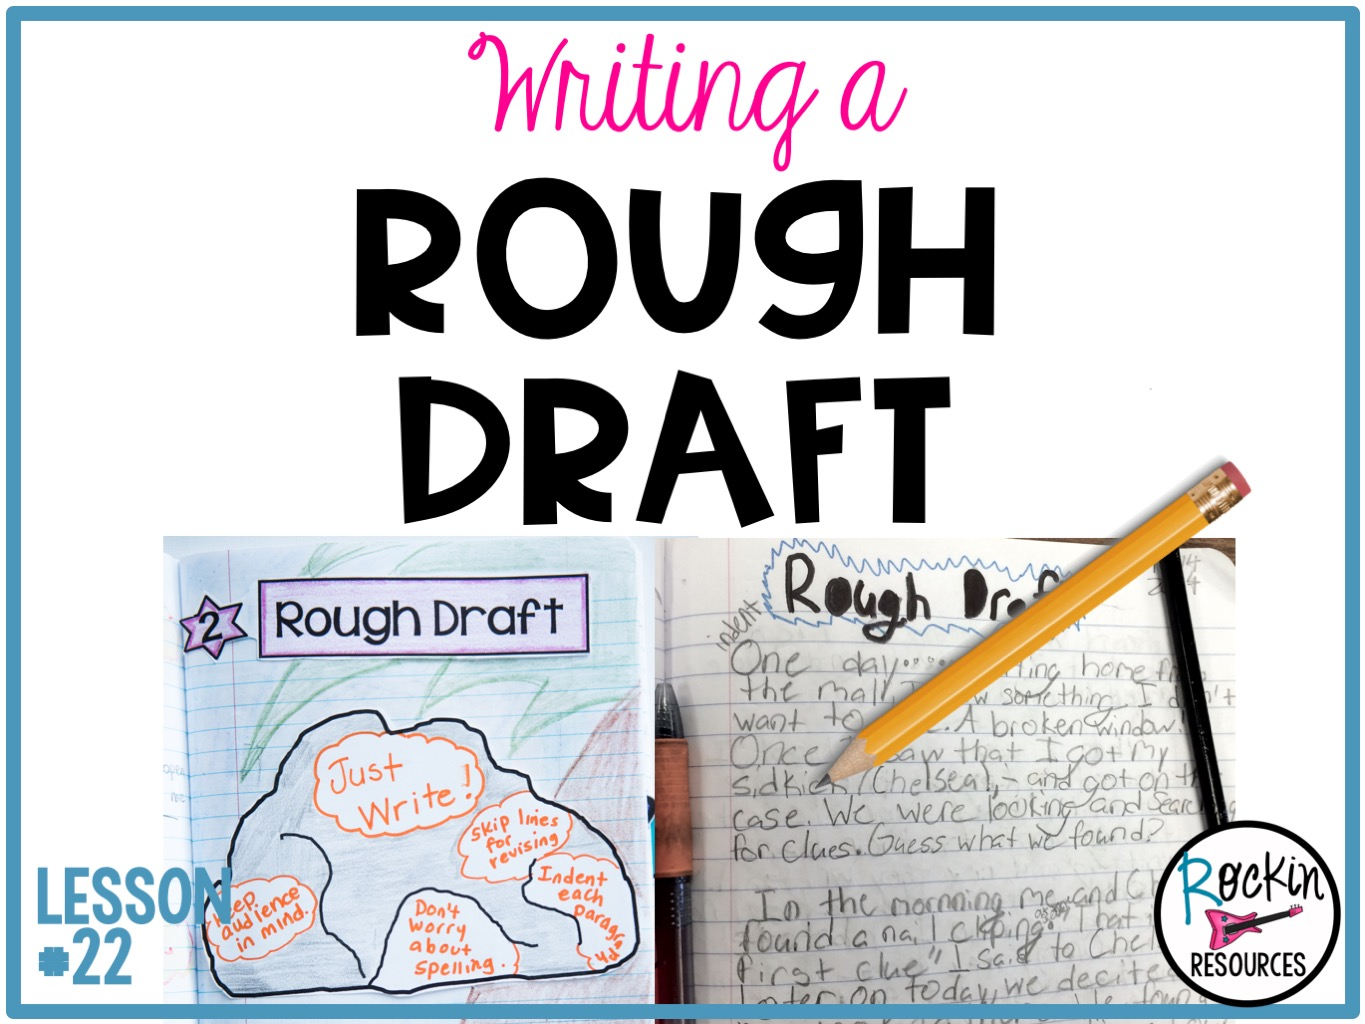 medium resolution of Writing Mini Lesson #22- Writing a Rough Draft for a Narrative Essay    Rockin Resources